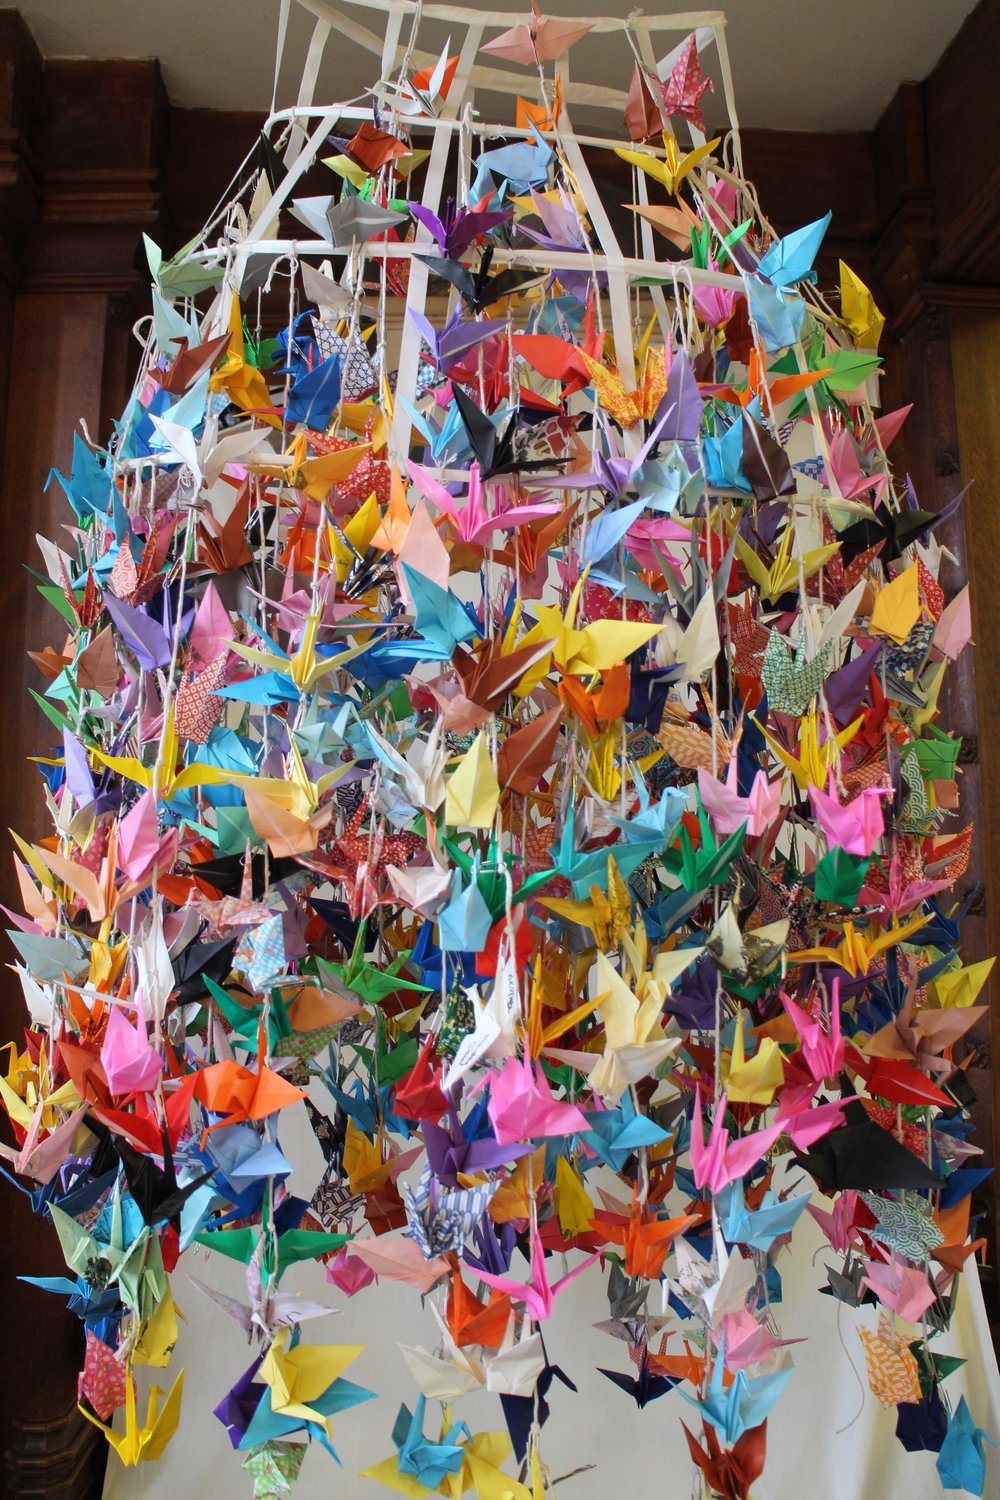 1000 cranes made by the public at St. Mary's church. All folded with wishes for 2016